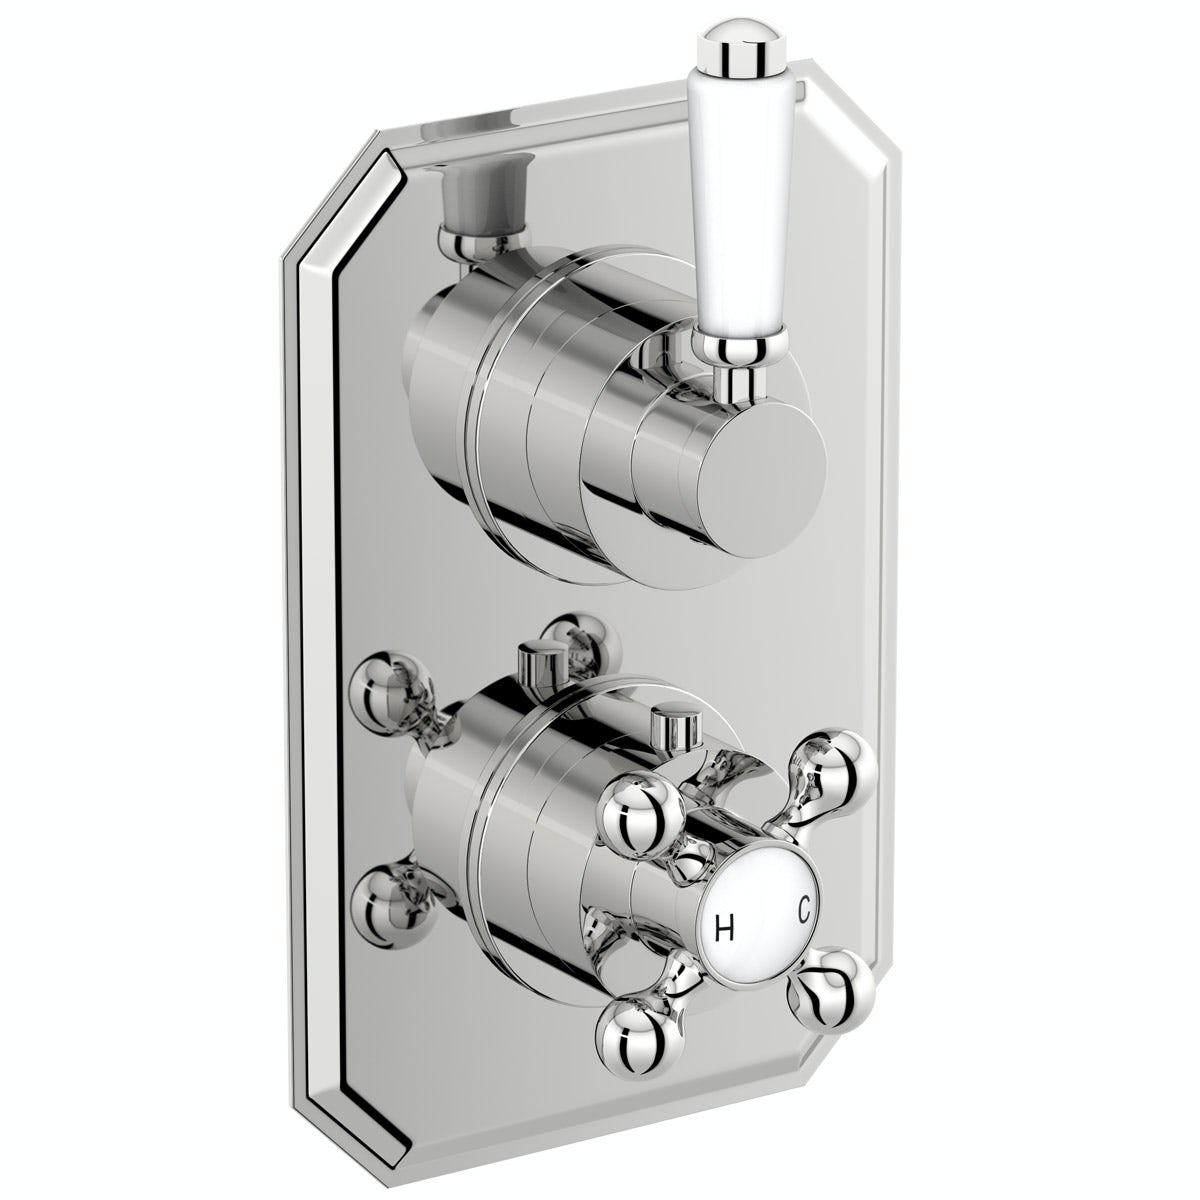 The Bath Co. Camberley twin thermostatic  shower valve